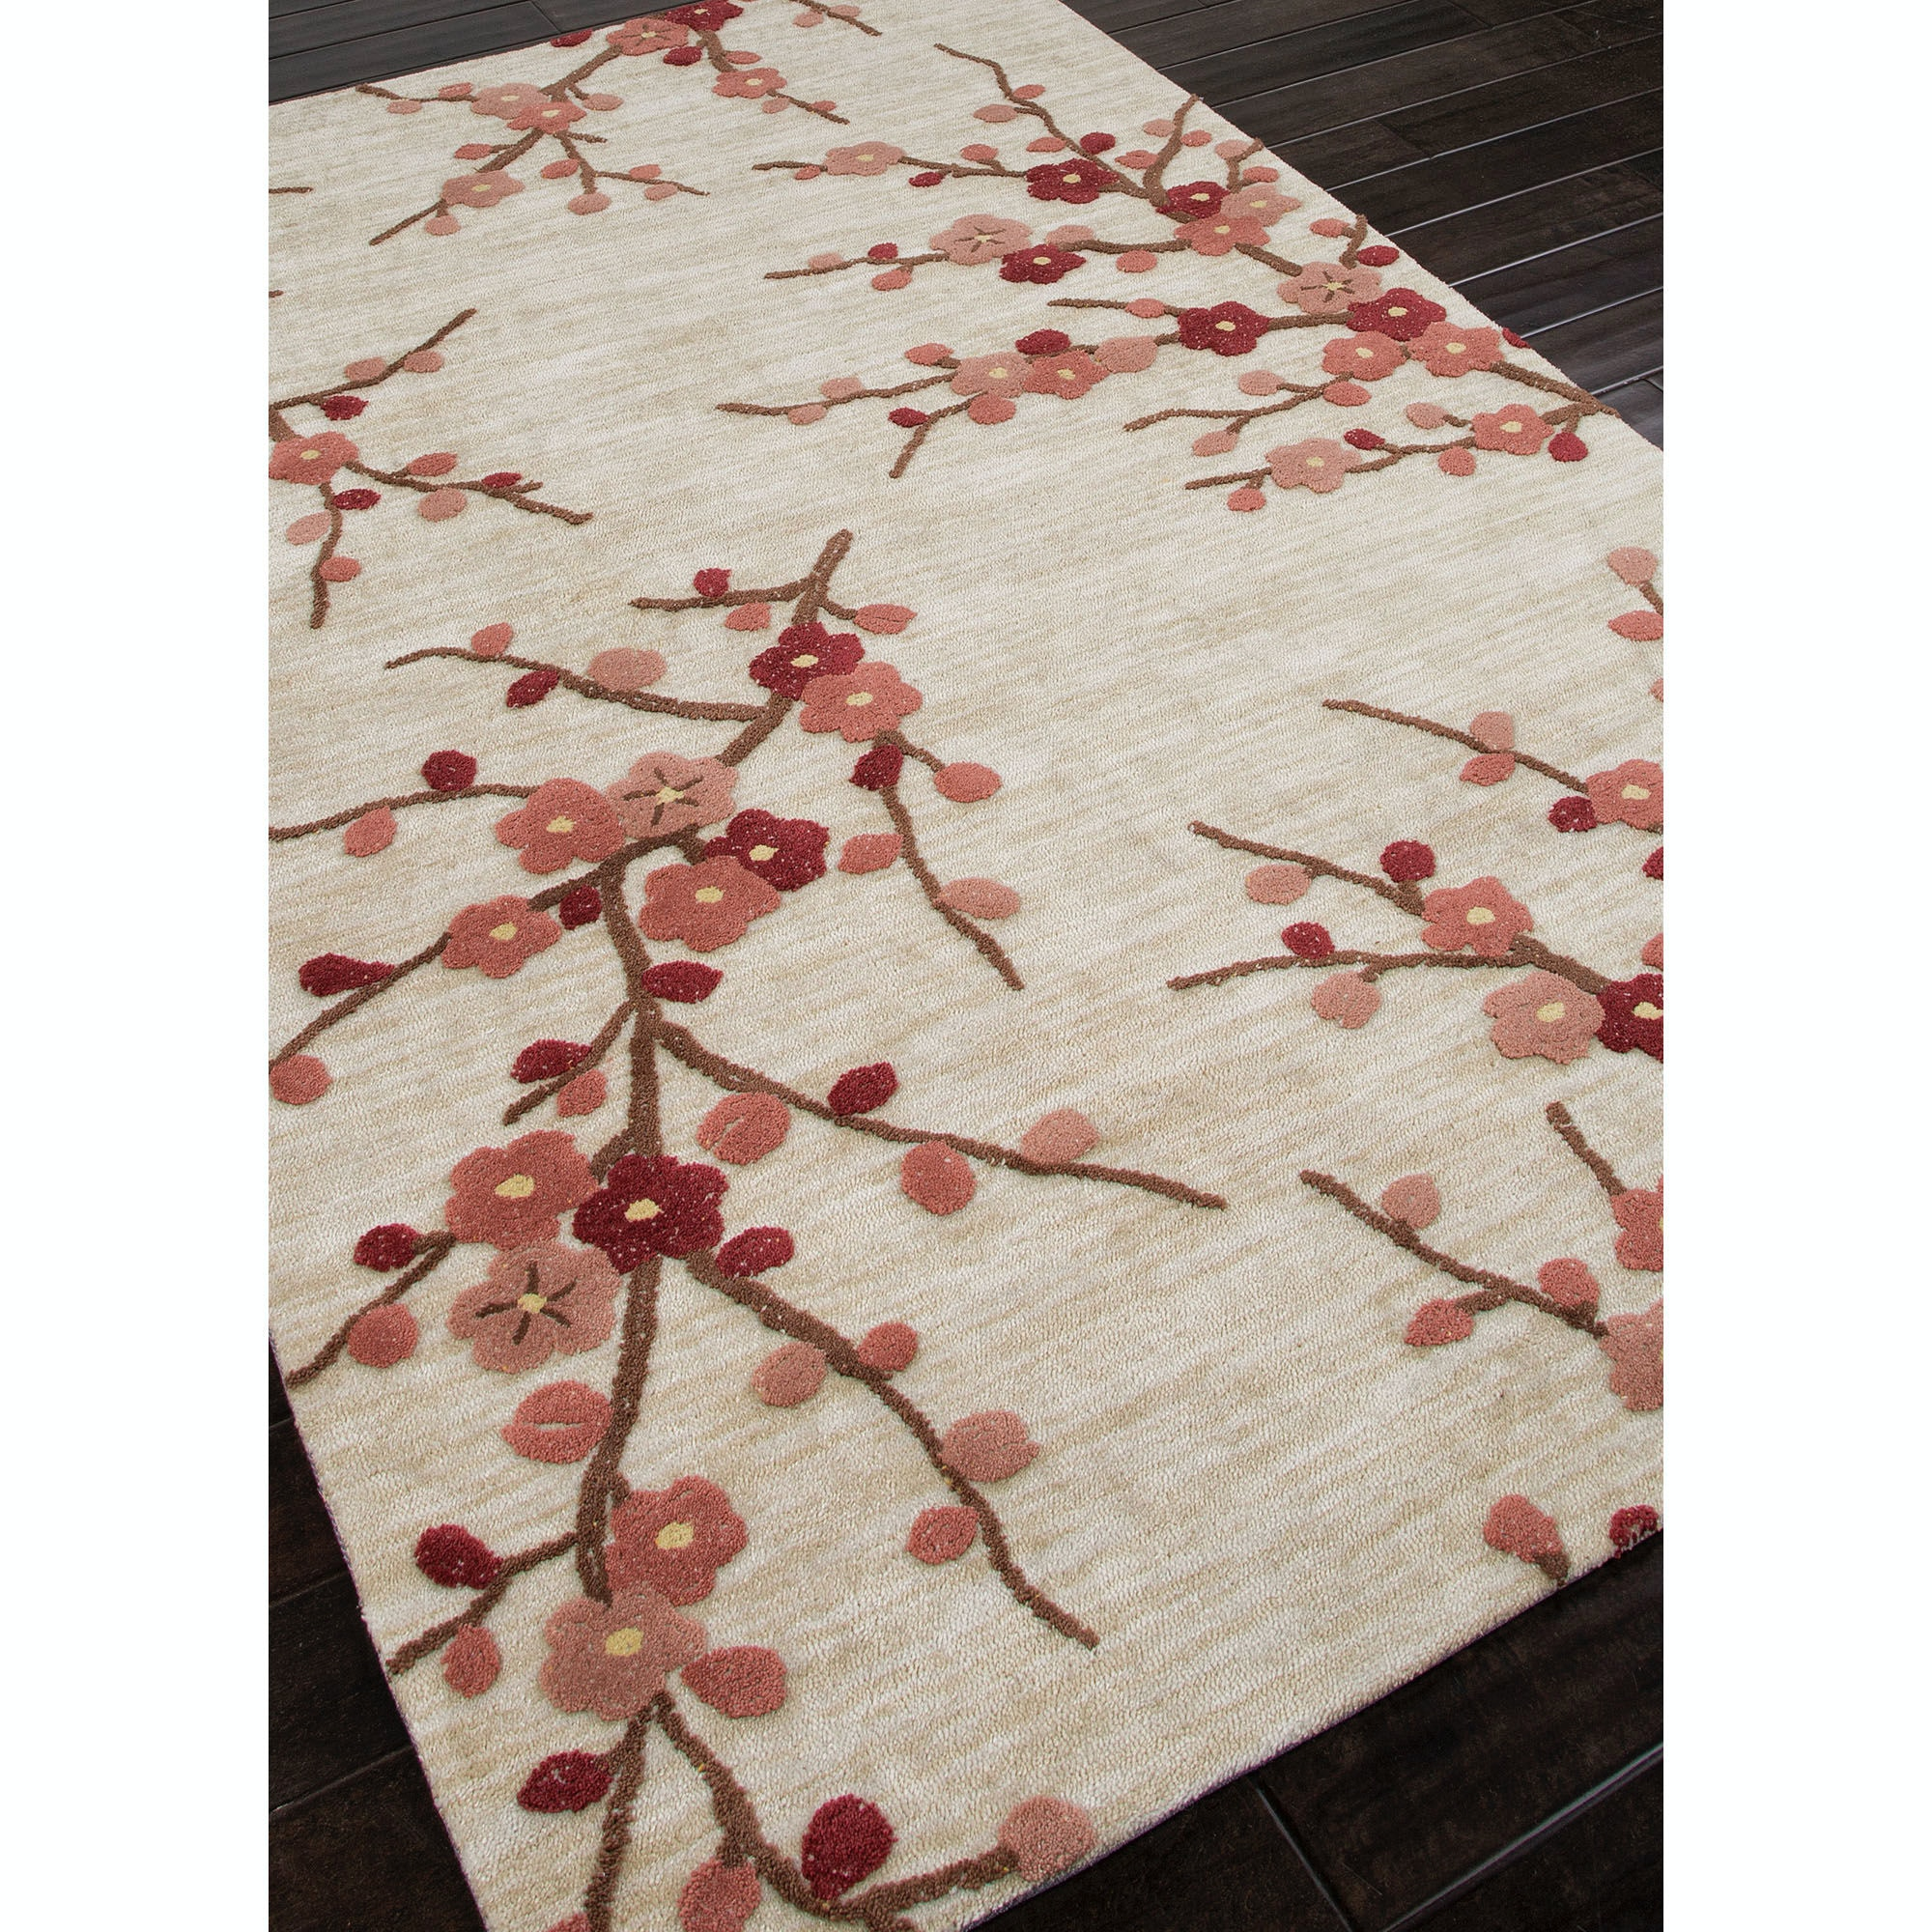 Cherry Blossom Area Rug Part - 44: Jaipur Rugs Hand-Tufted Floral Pattern Polyester Ivory/Red Area Rug ( 3.6x5